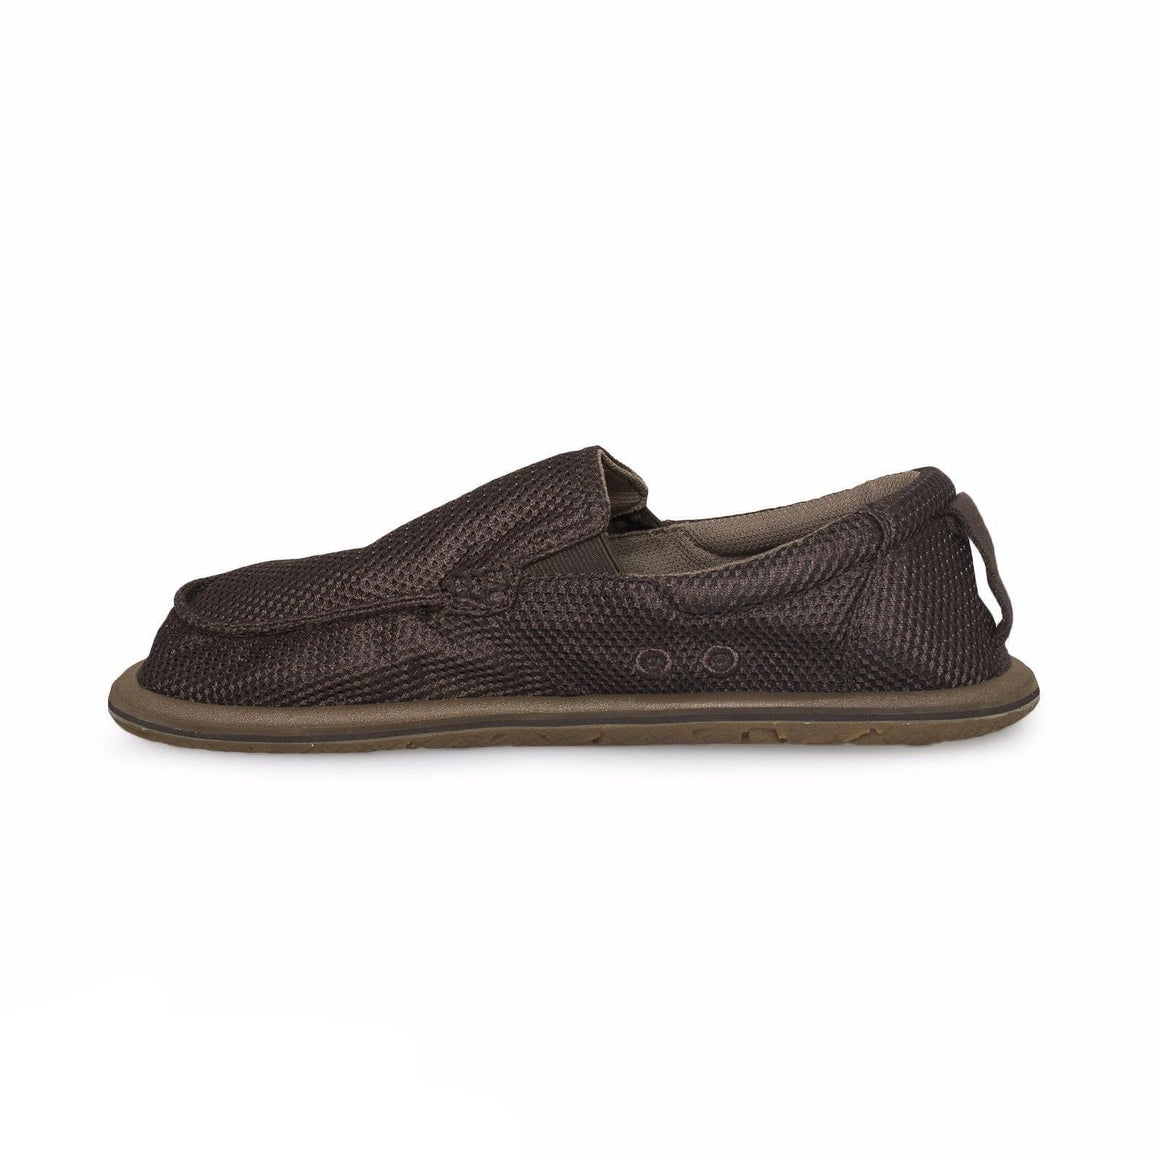 Sanuk Tailgater Mesh Brown Shoes